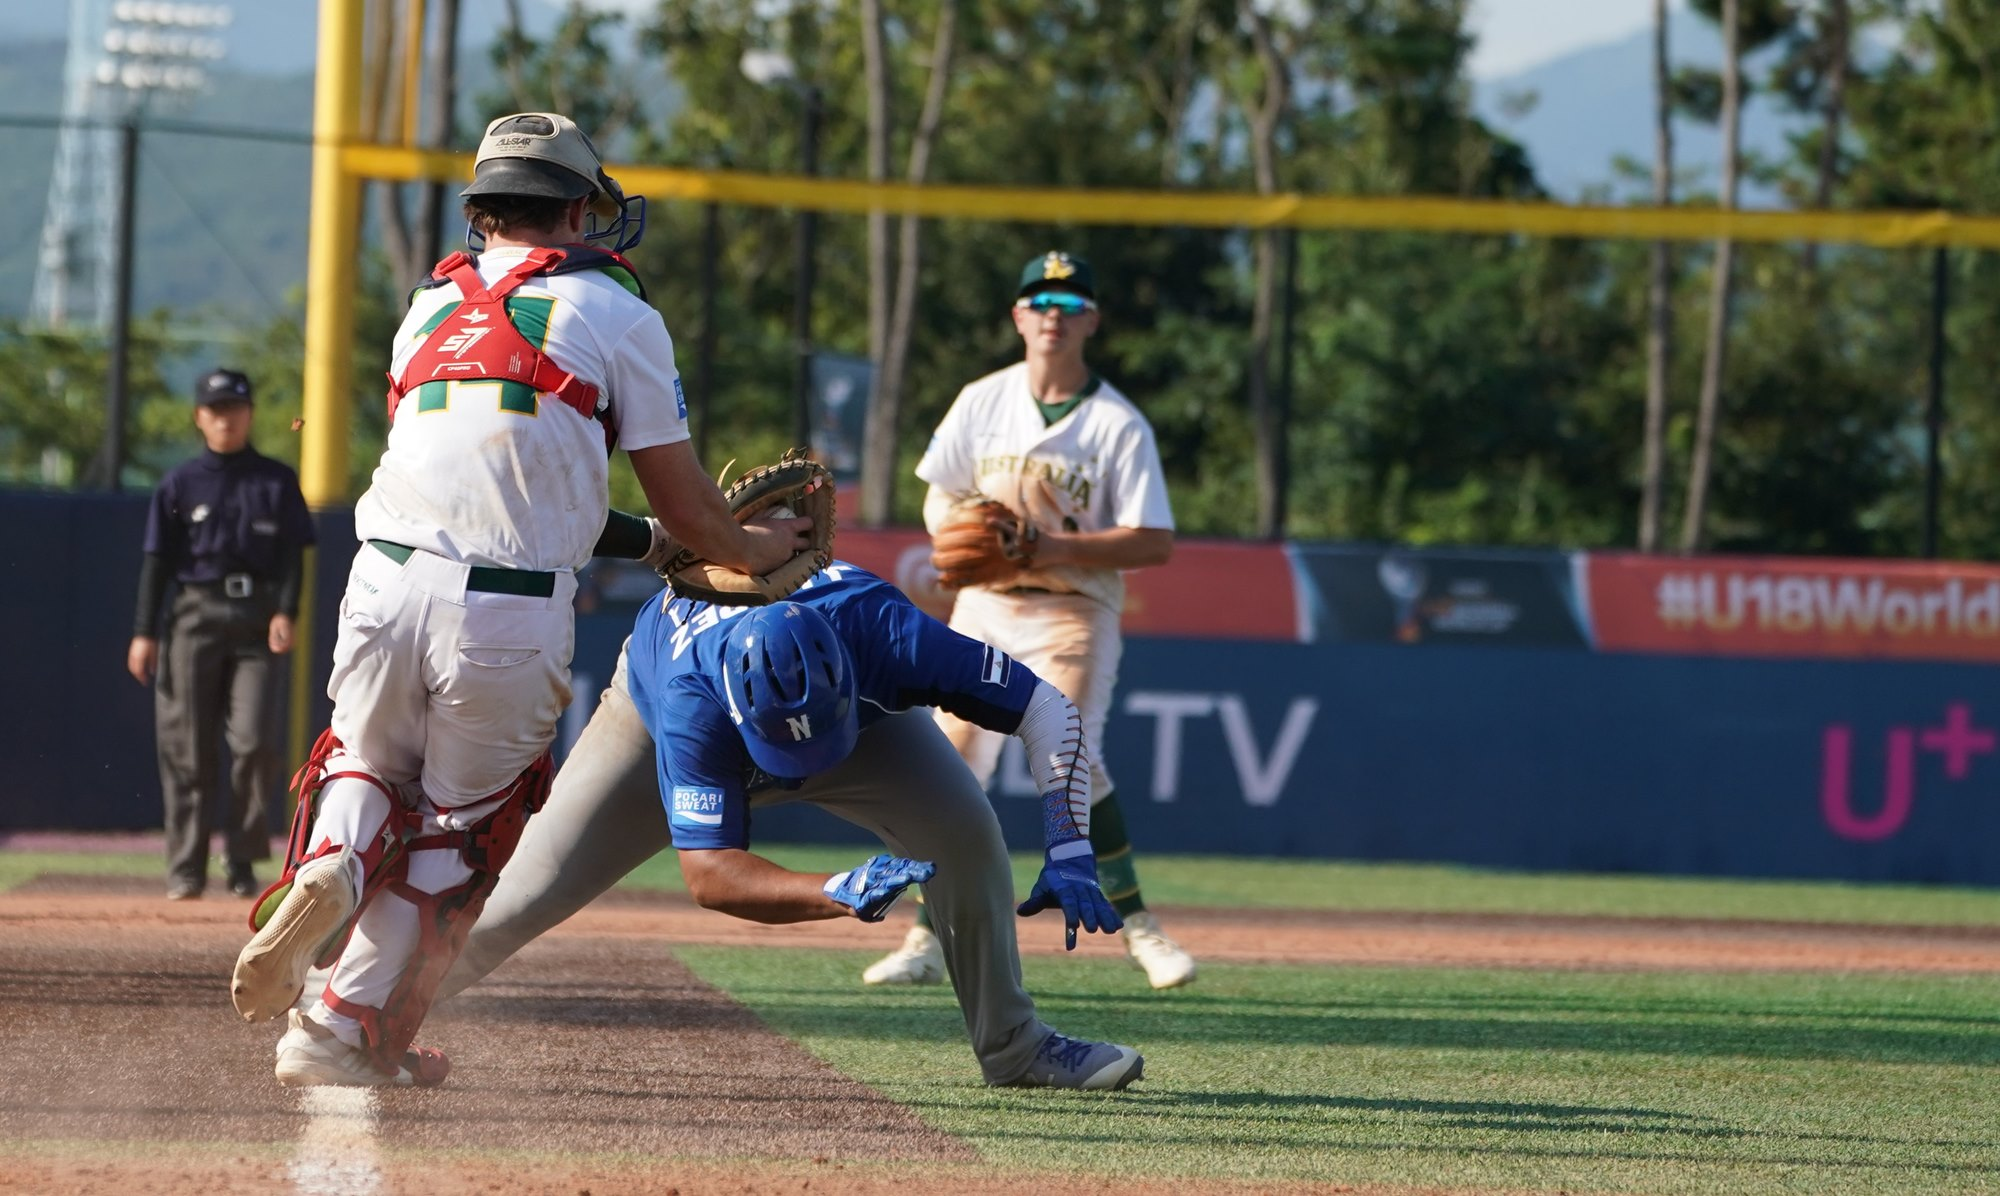 In the top of the ninth Nicaragua lost a runner at home on a failed squeeze play attempt